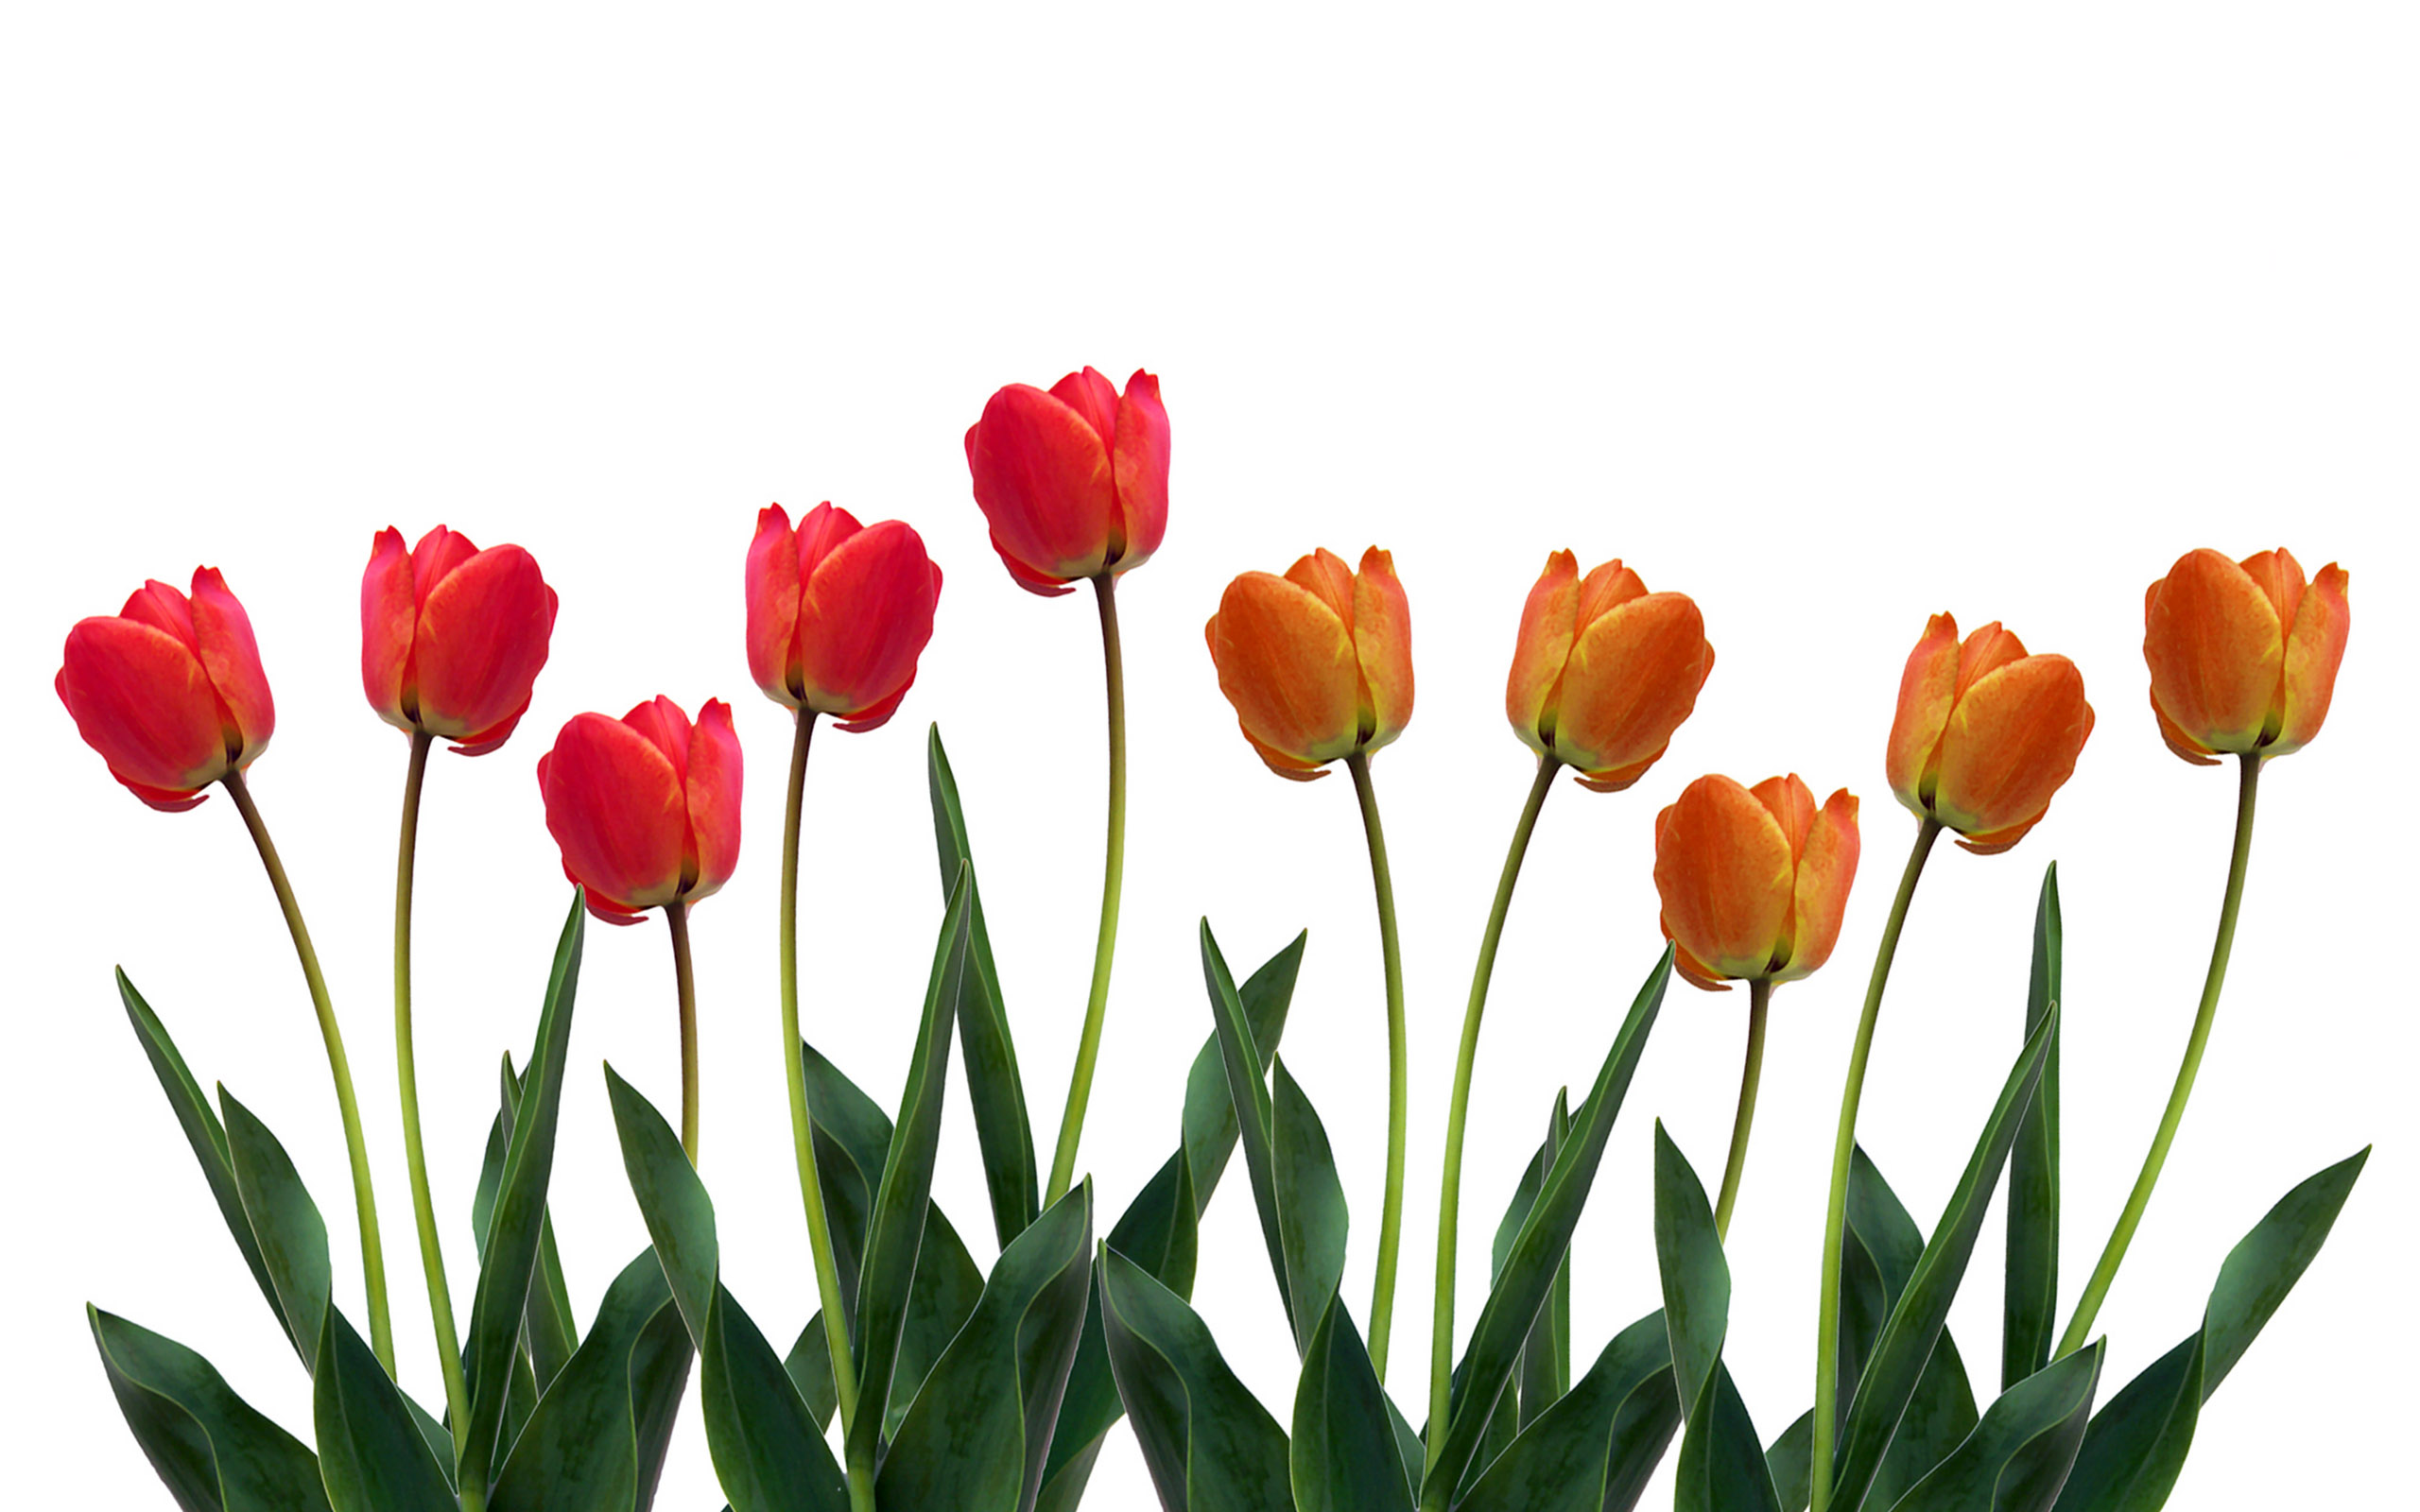 Free pictures of tulips flowers vector freeuse download Tulip pics free - ClipartFest vector freeuse download